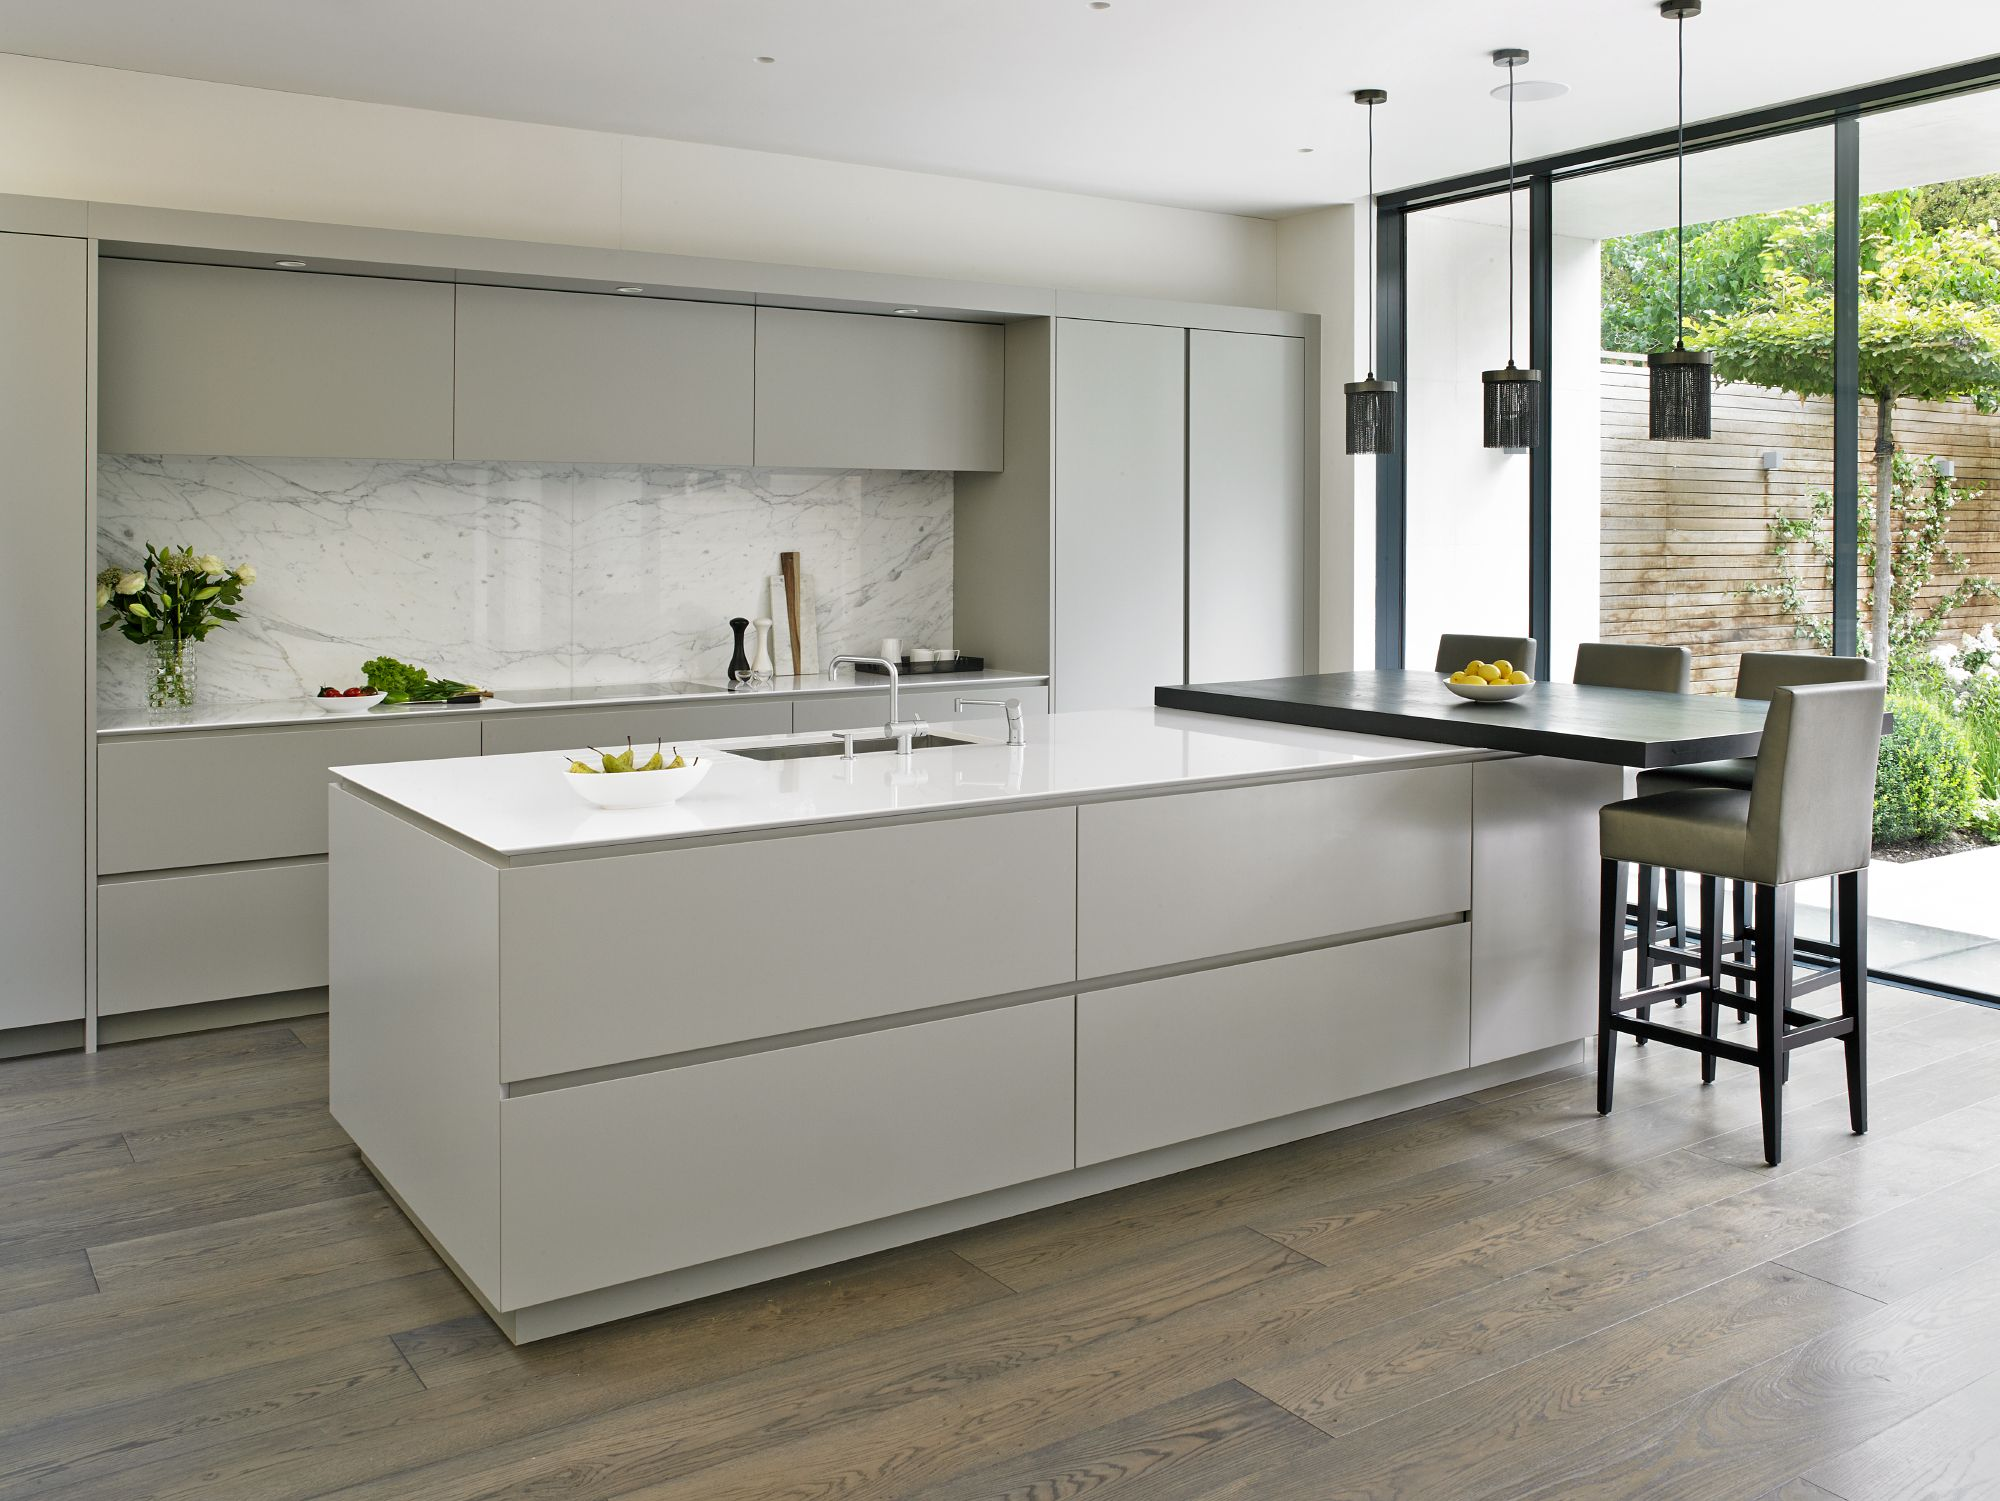 Grey kitchen modern kitchen london by lwk kitchens london - Sleek Handleless Kitchen Design With Large Island Breakfast Bar Marble Splashback And Floor To Modern Kitchens